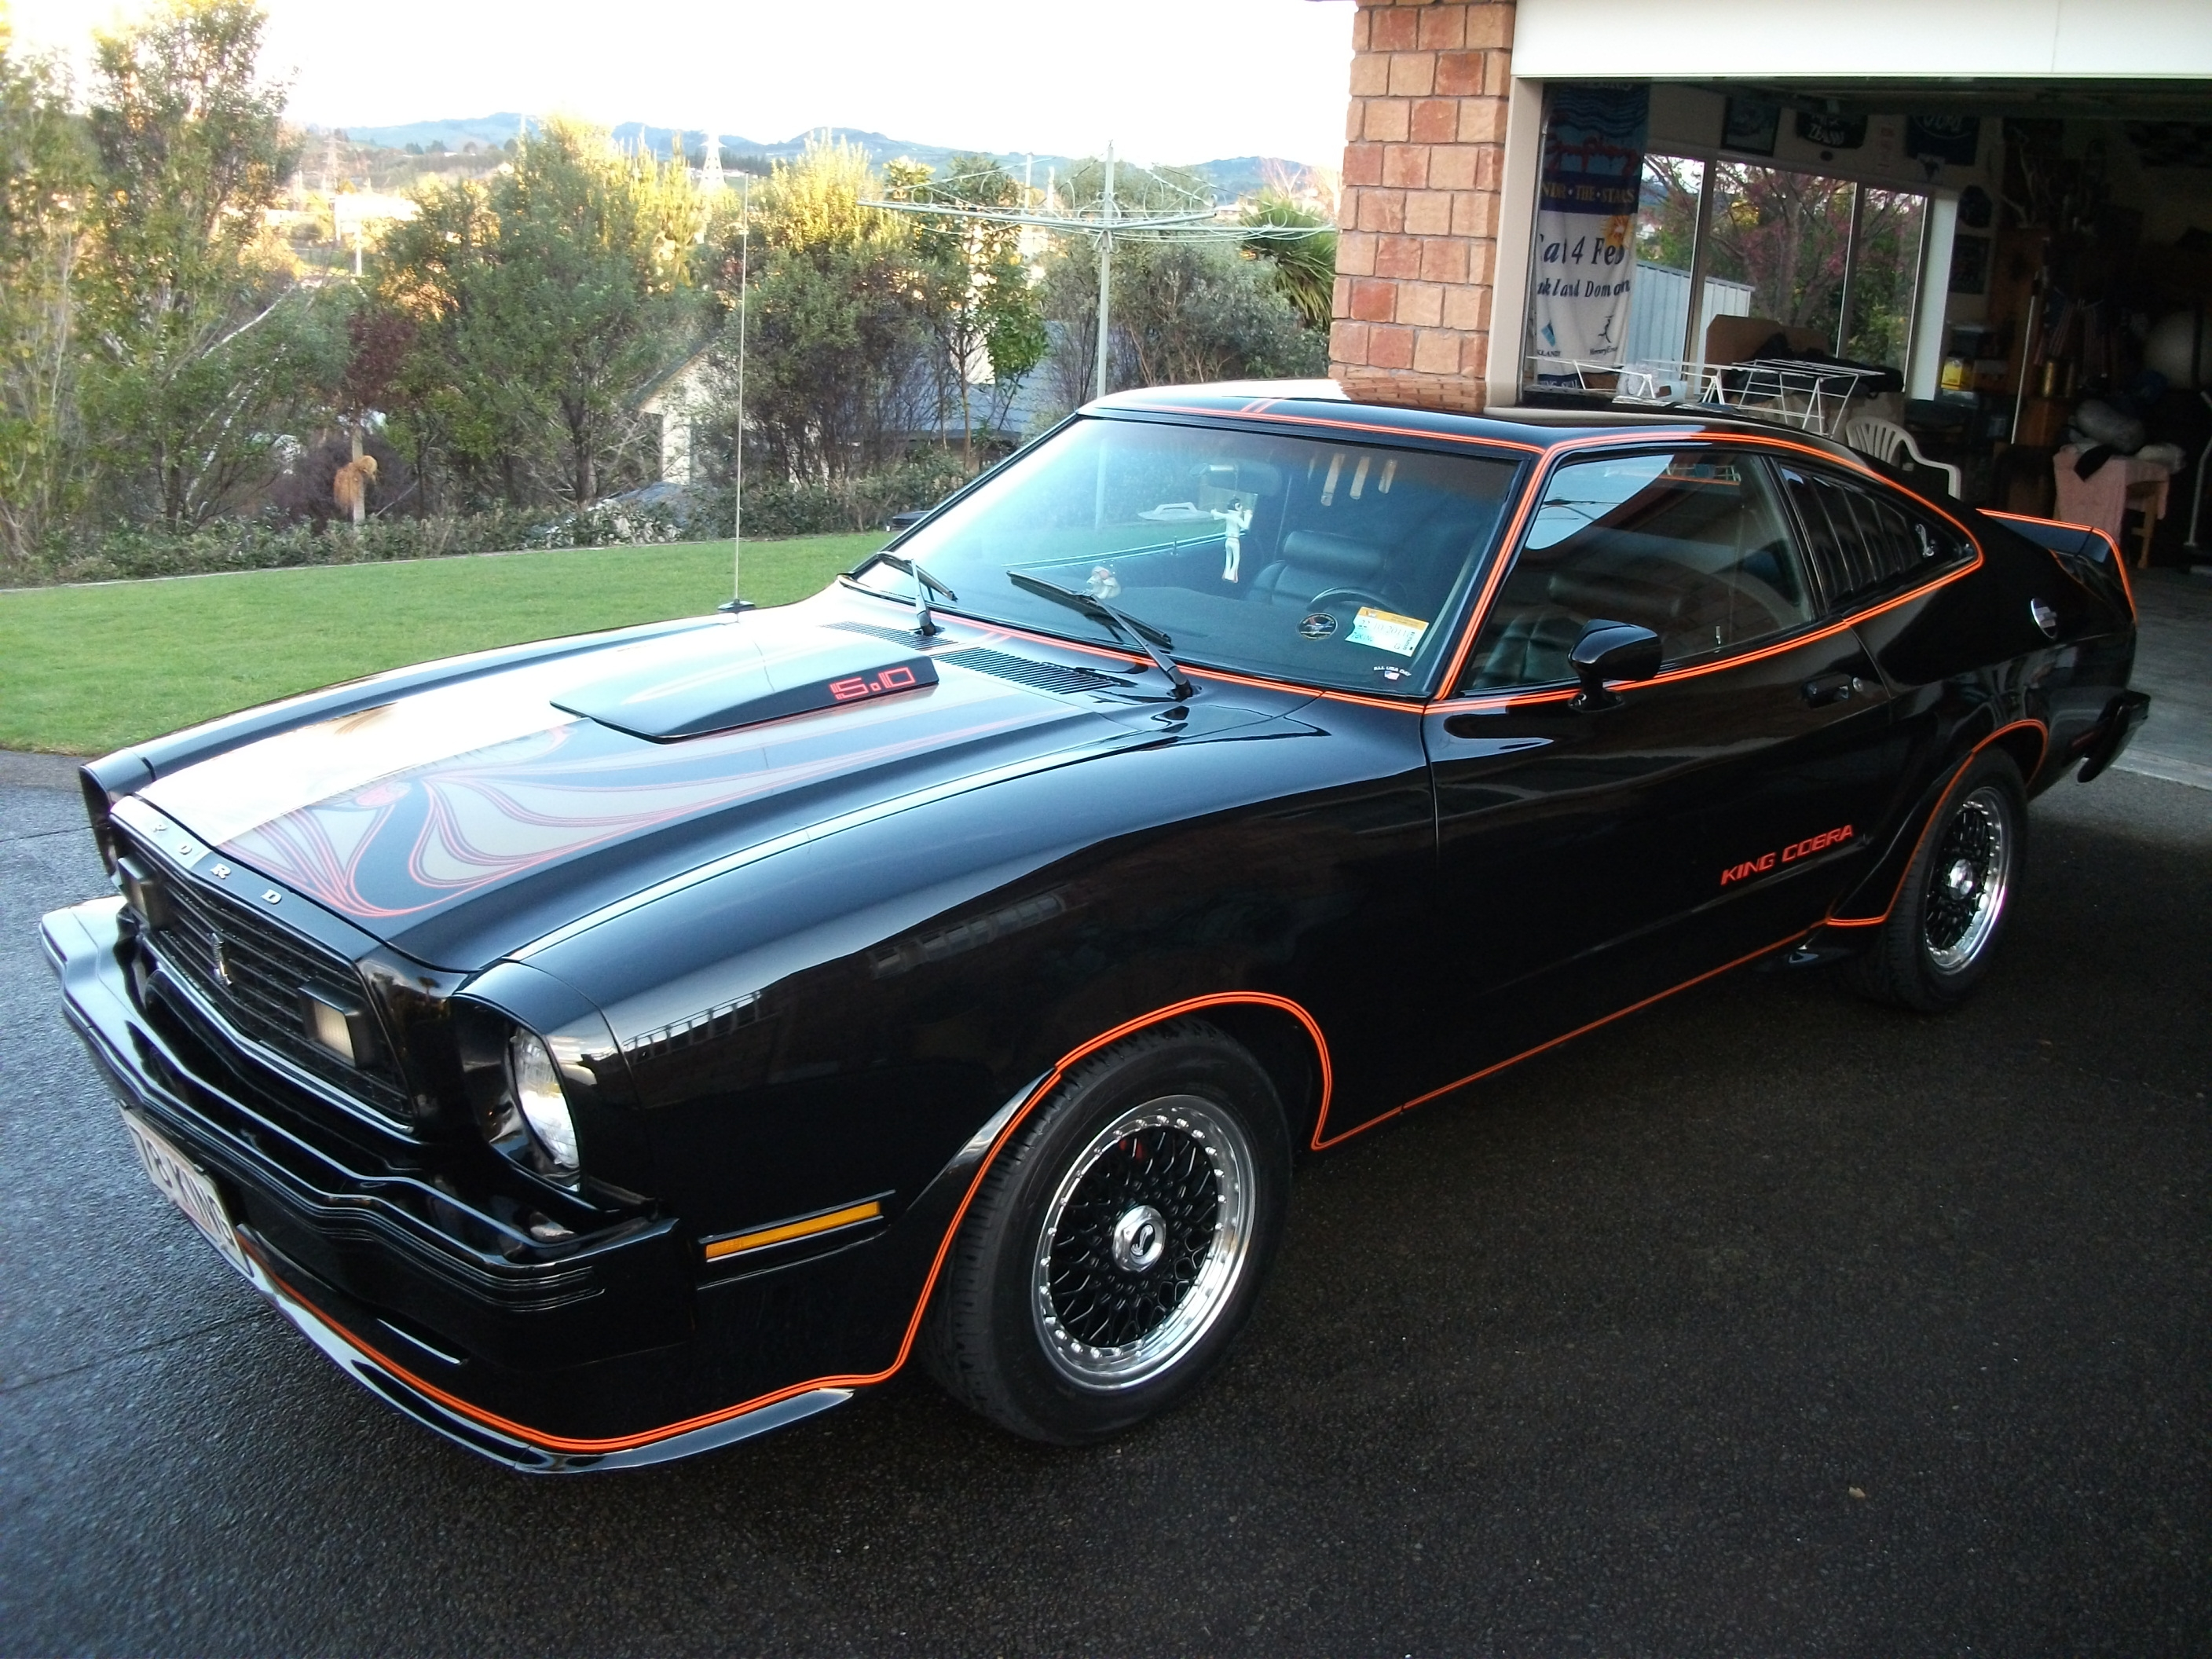 Fotos 1974 ford mustang 2nd gen 74 mustang for sale -  74mkii 1974 Ford Mustang Ii 26153824028_original